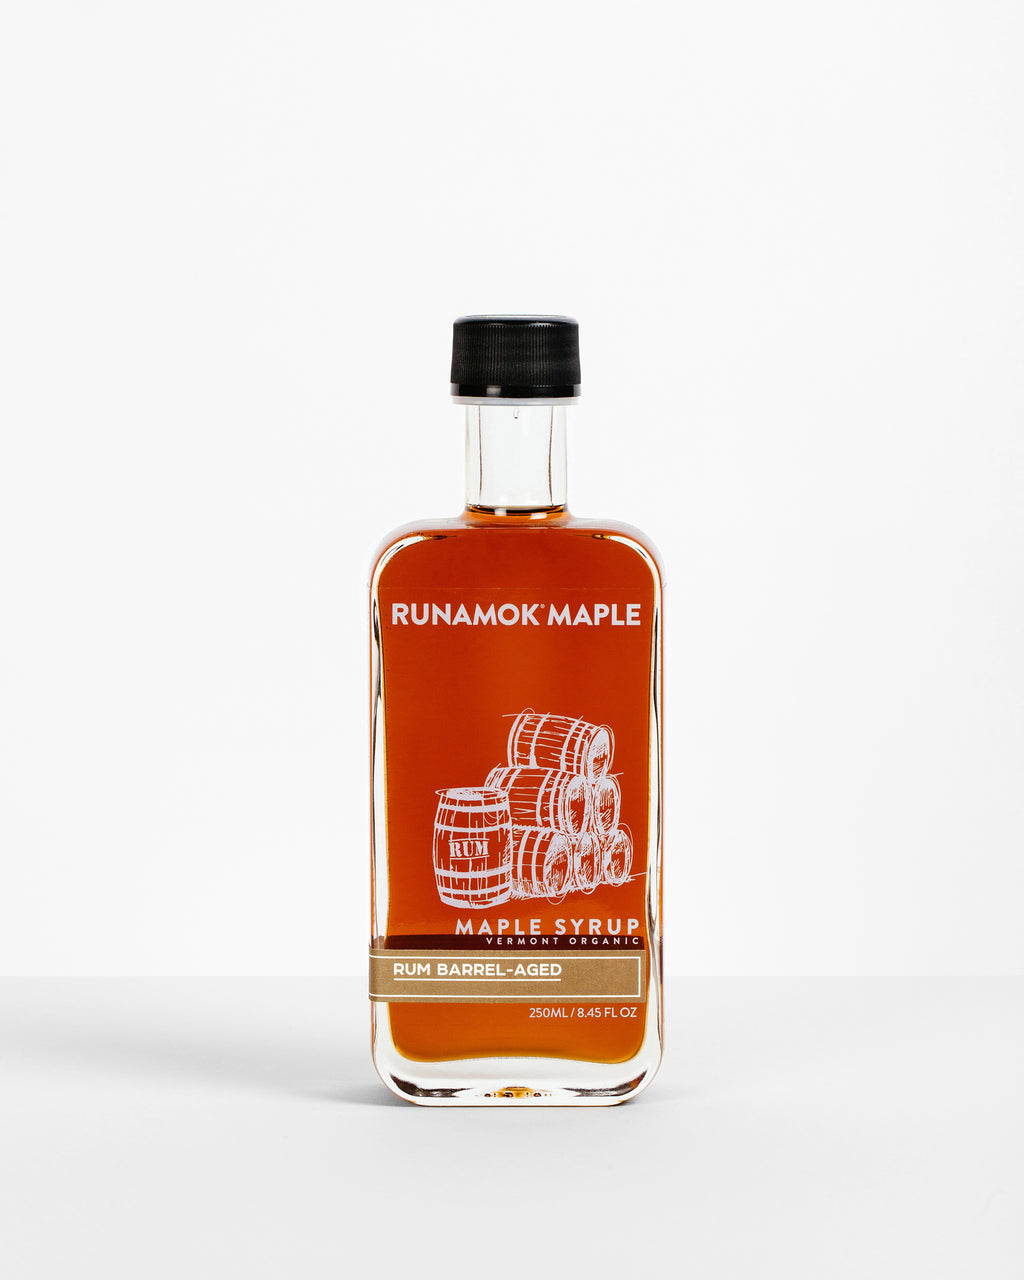 Runamok - Rum Barrel Aged Maple Syrup